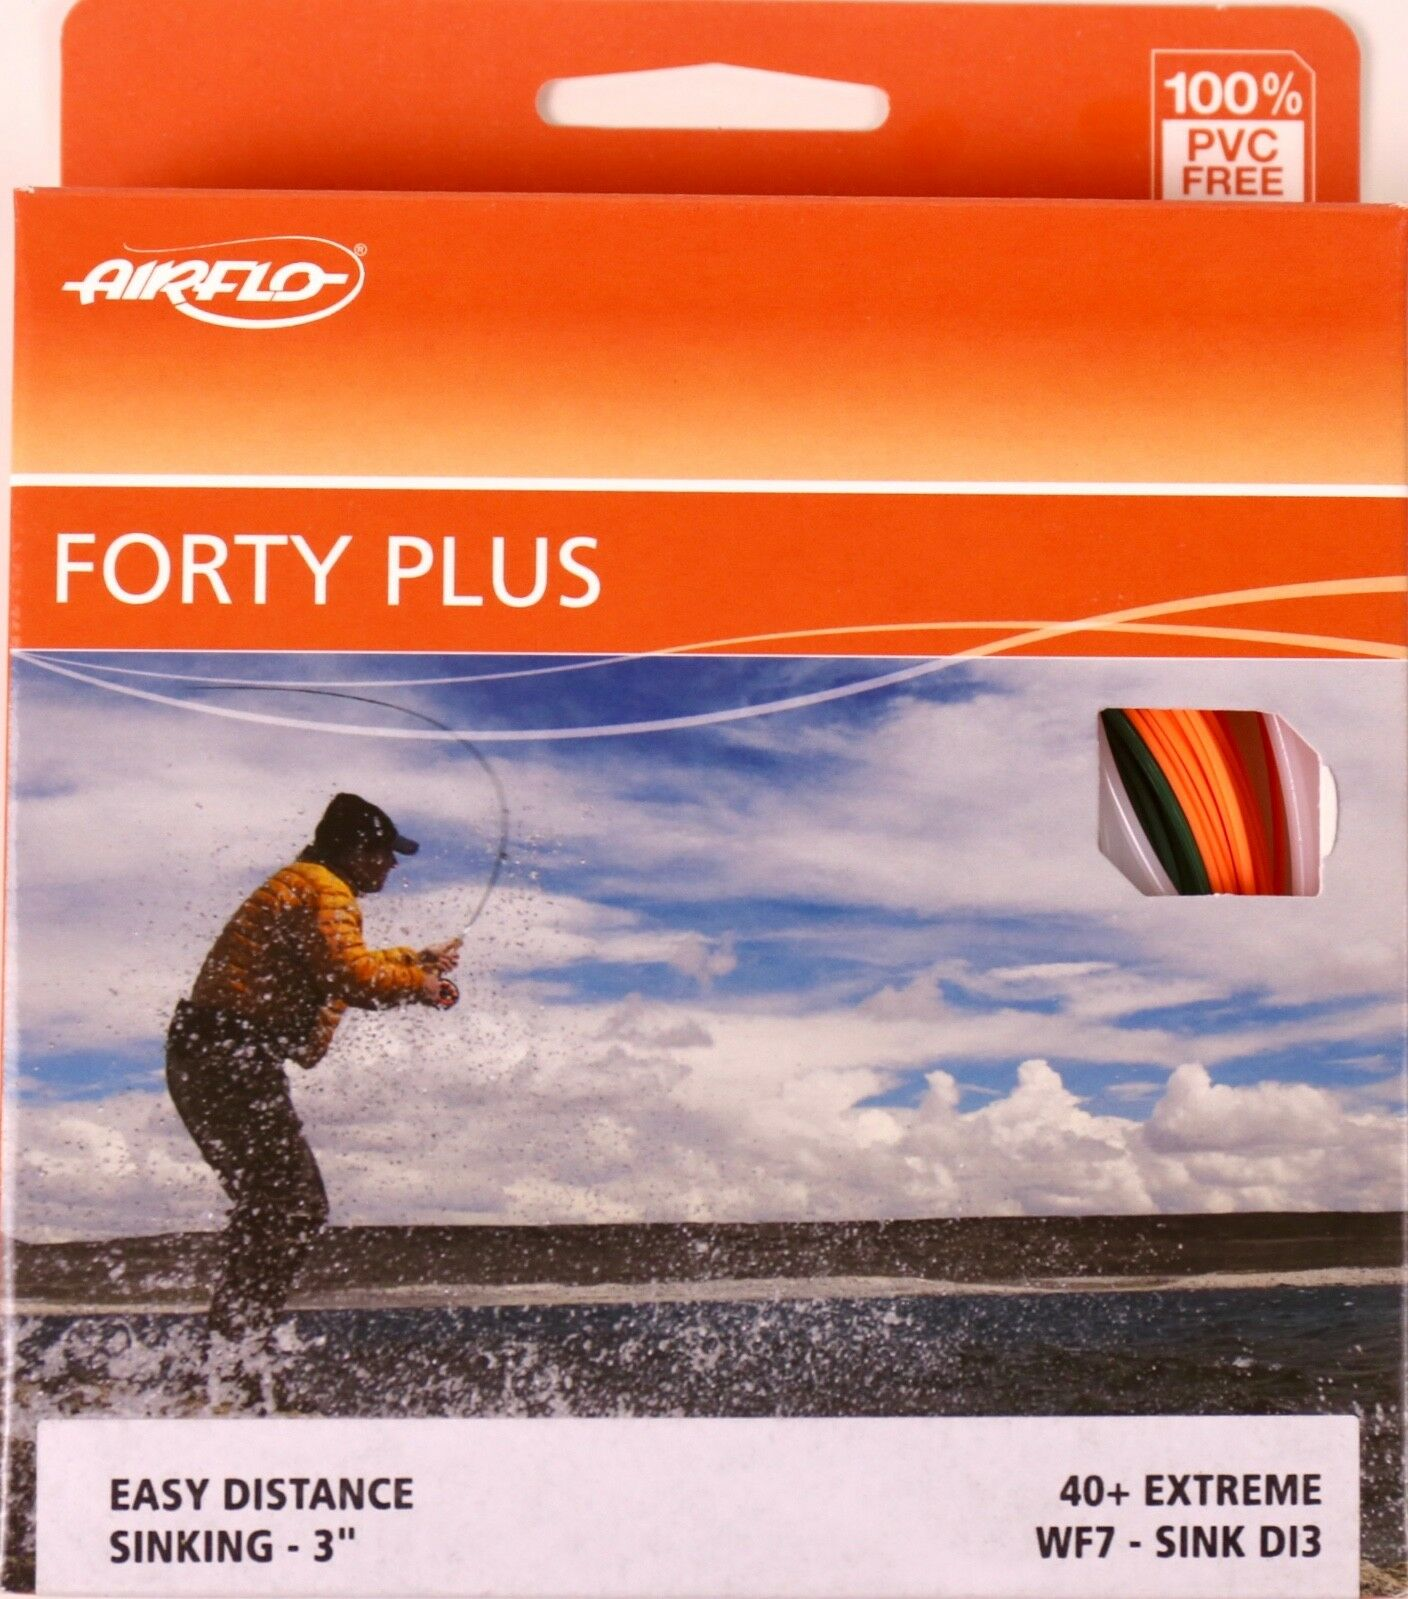 Airflo Forty Plus Extreme WF7 Sink DI3 Fly Line gratuito FAST SHIPPING 40